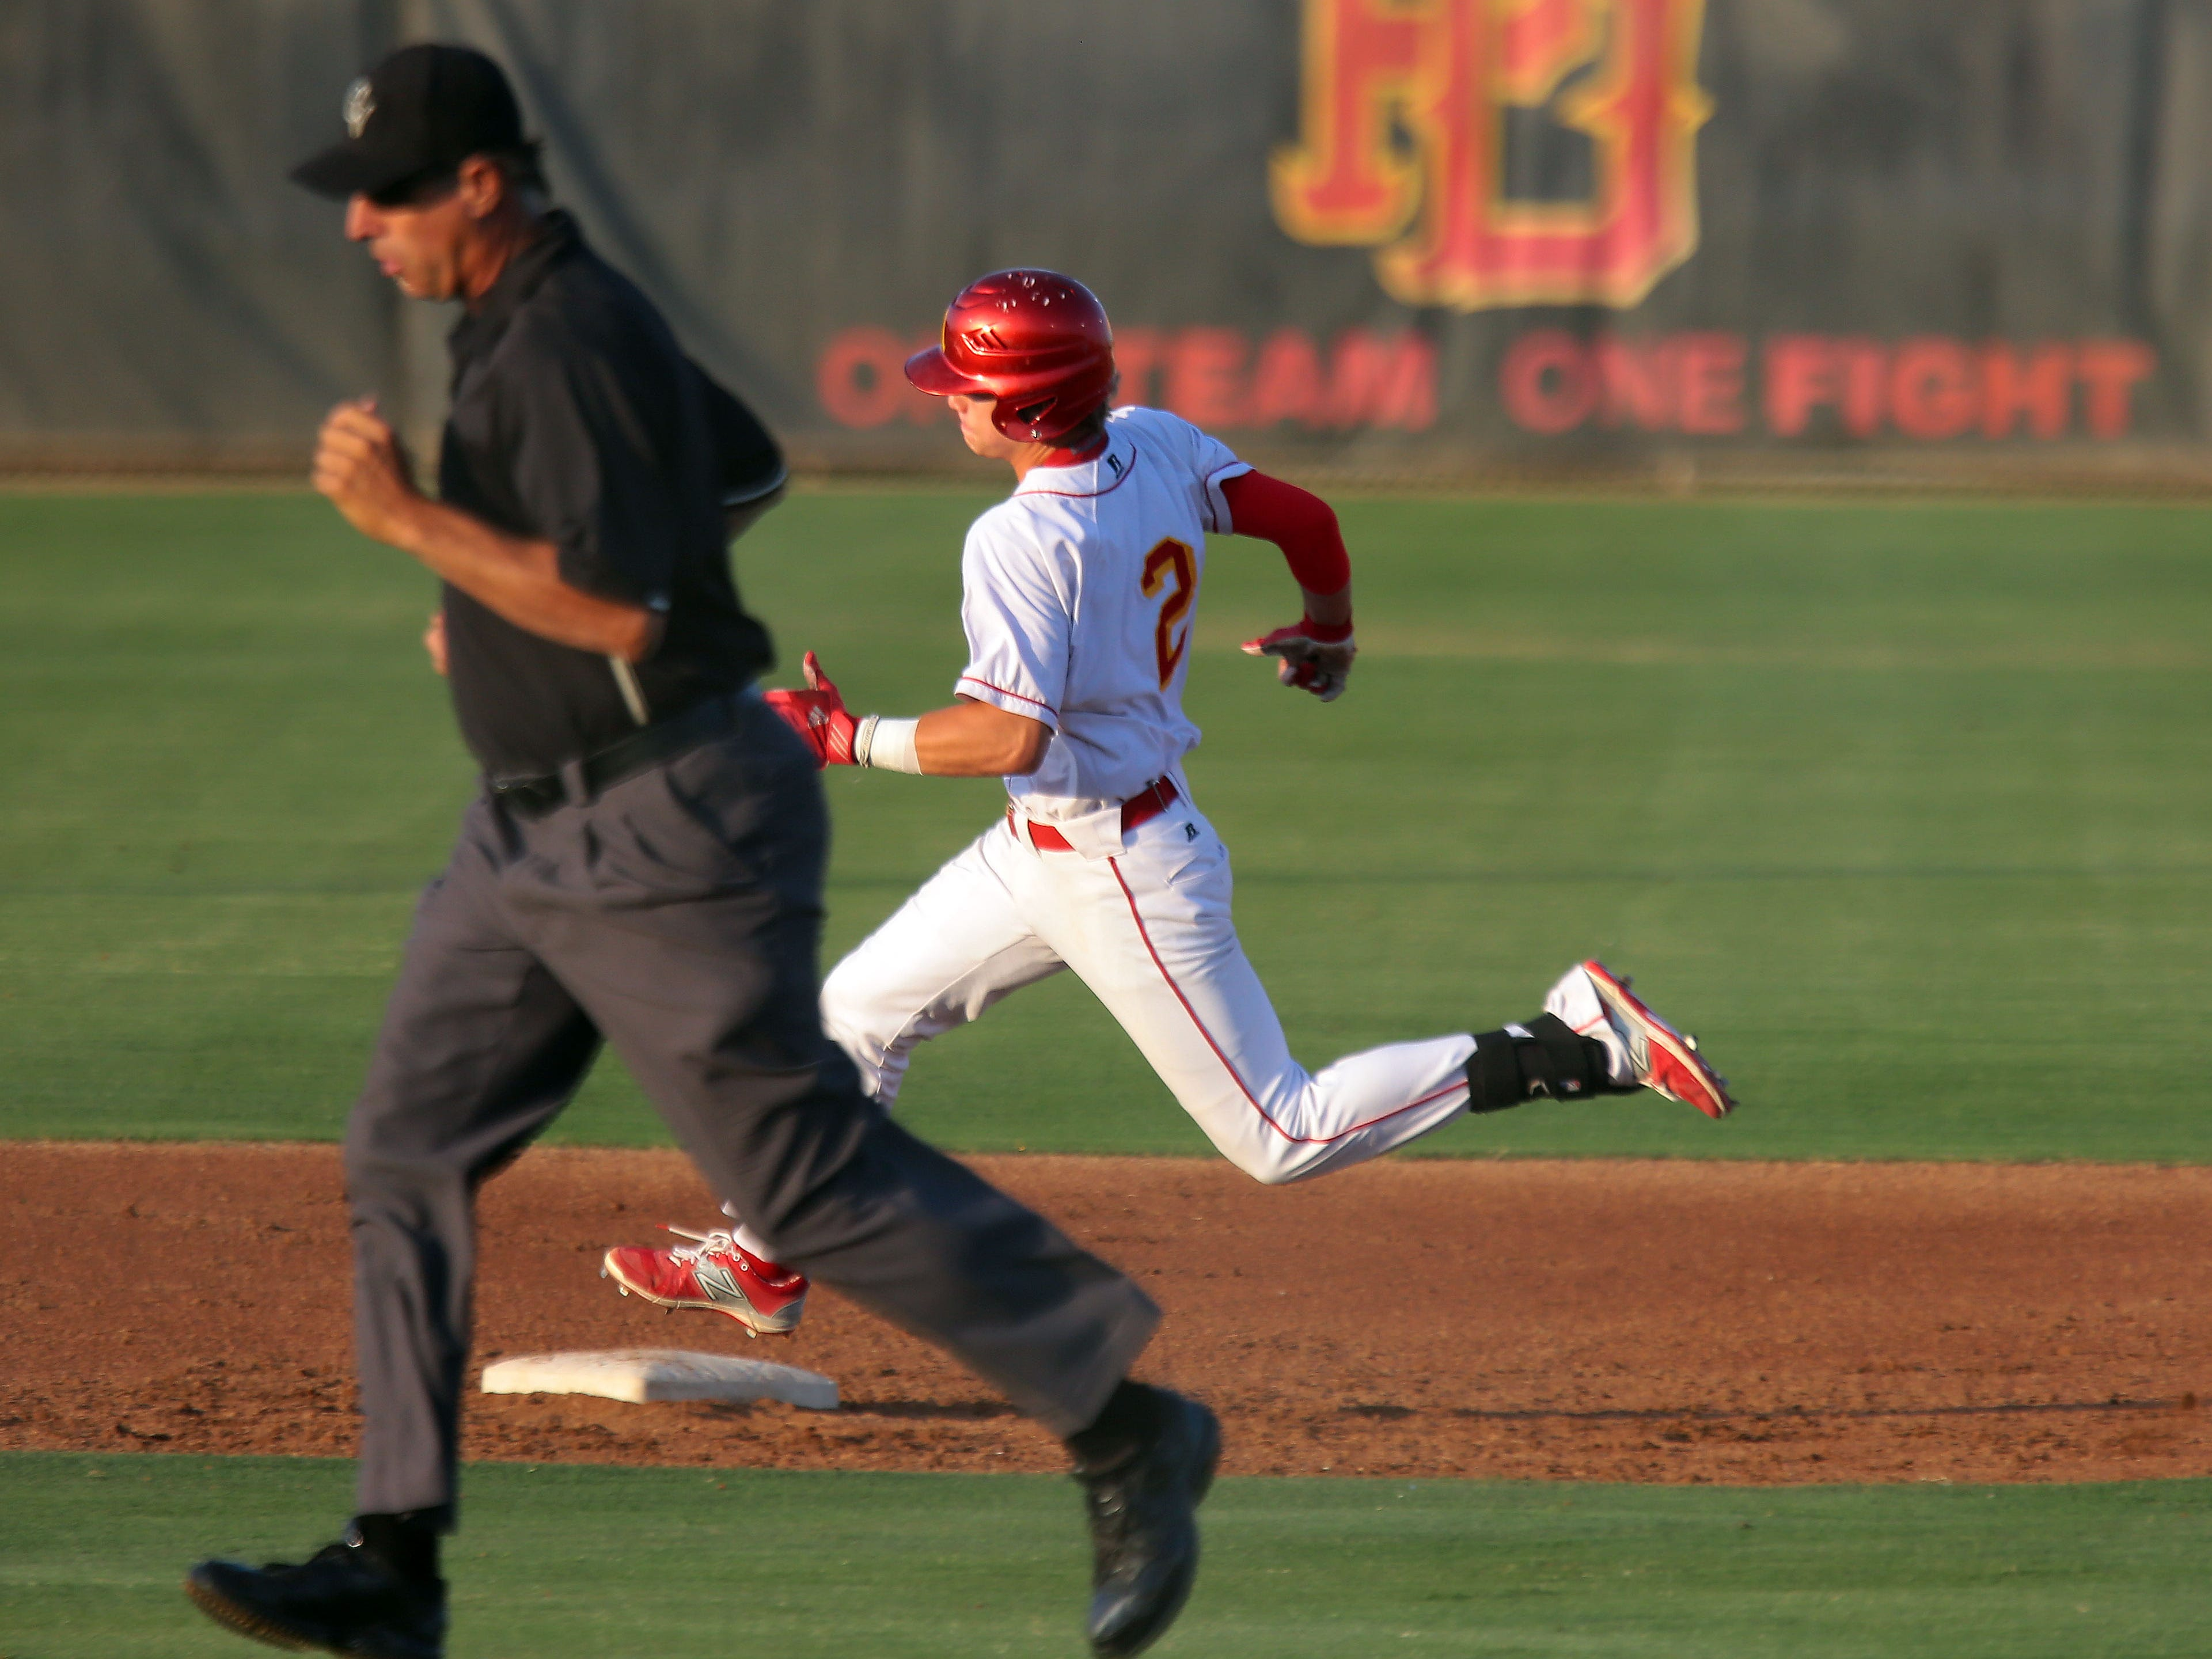 Palm Desert's Travis Moniot hits a triple against Indio in the first inning on Tuesday in Palm Desert.